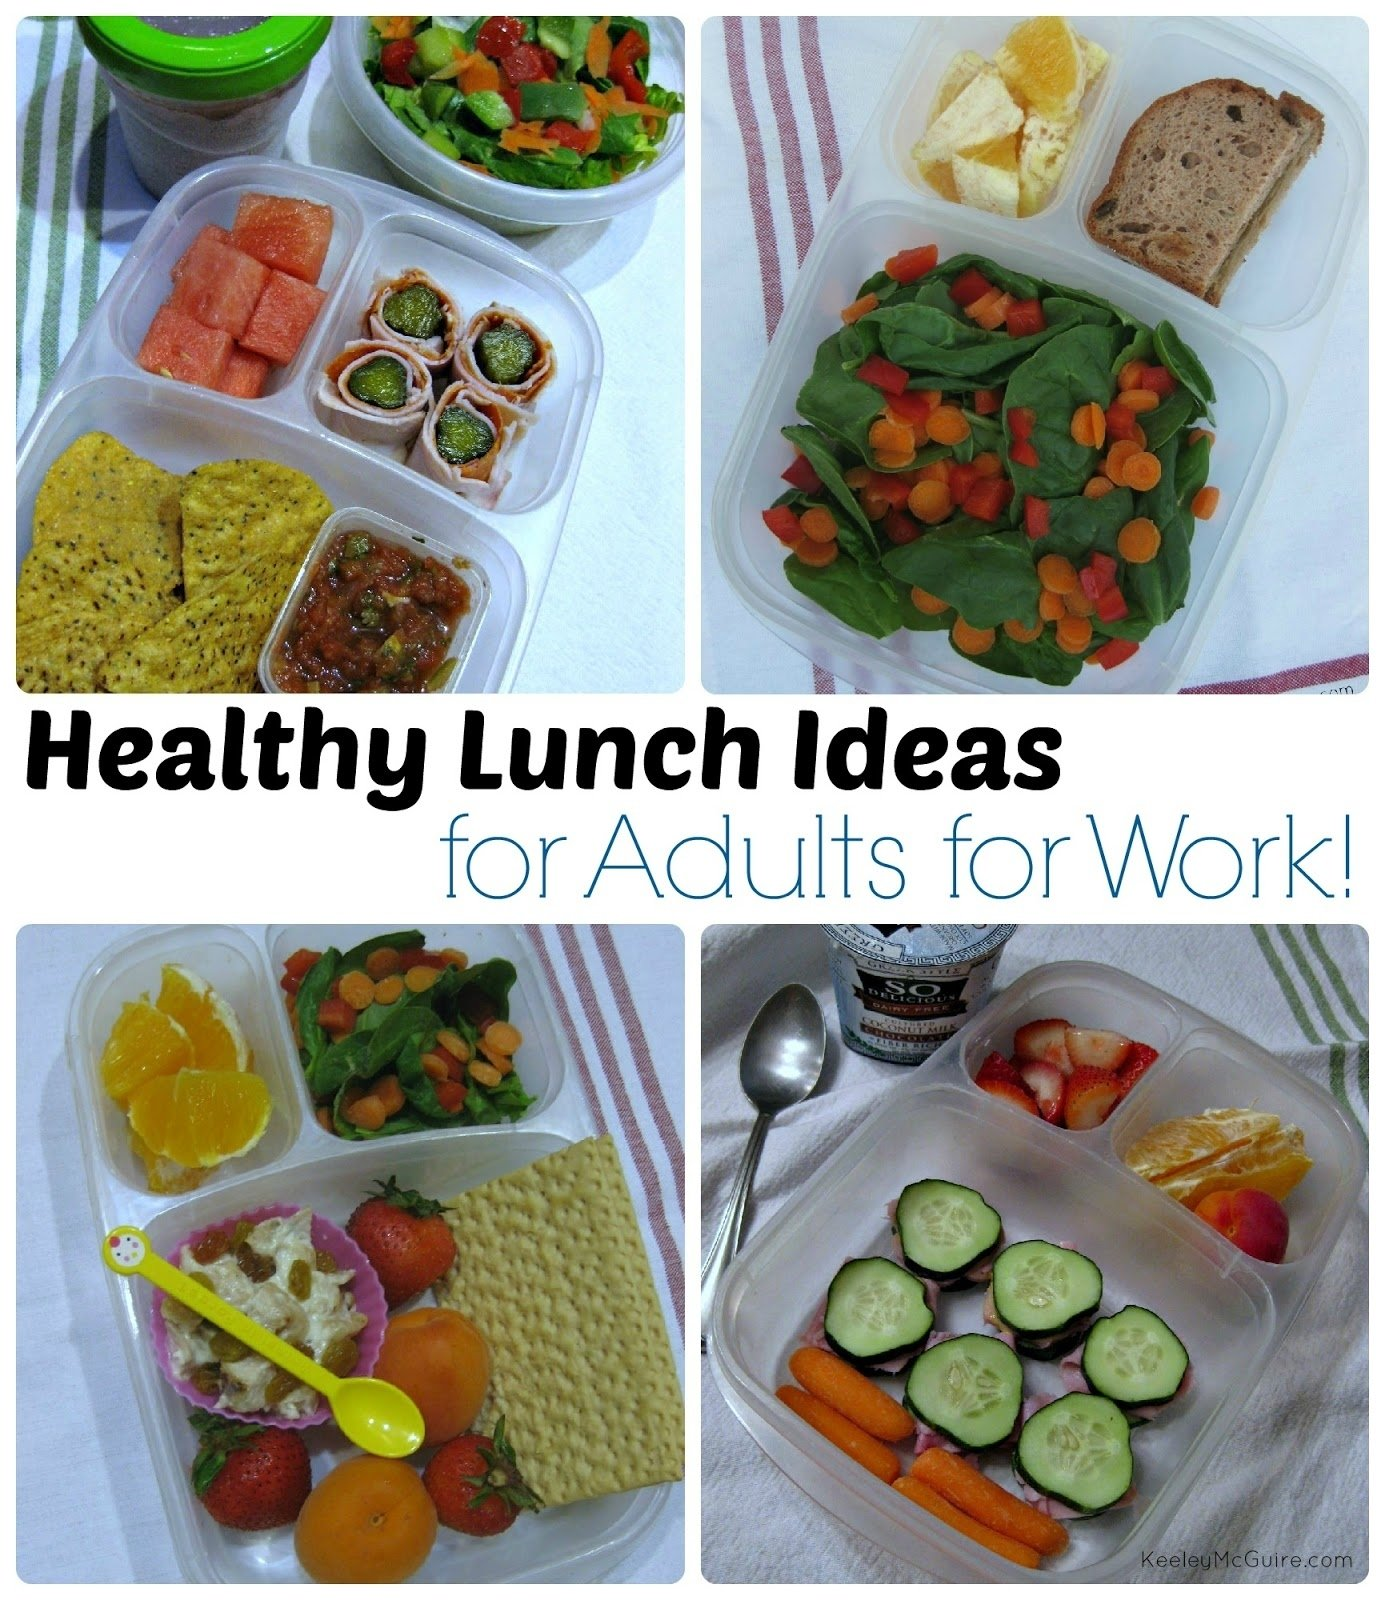 10 Fantastic Simple Healthy Lunch Ideas For Work gluten free allergy friendly lunch made easy healthy adult work 8 2020